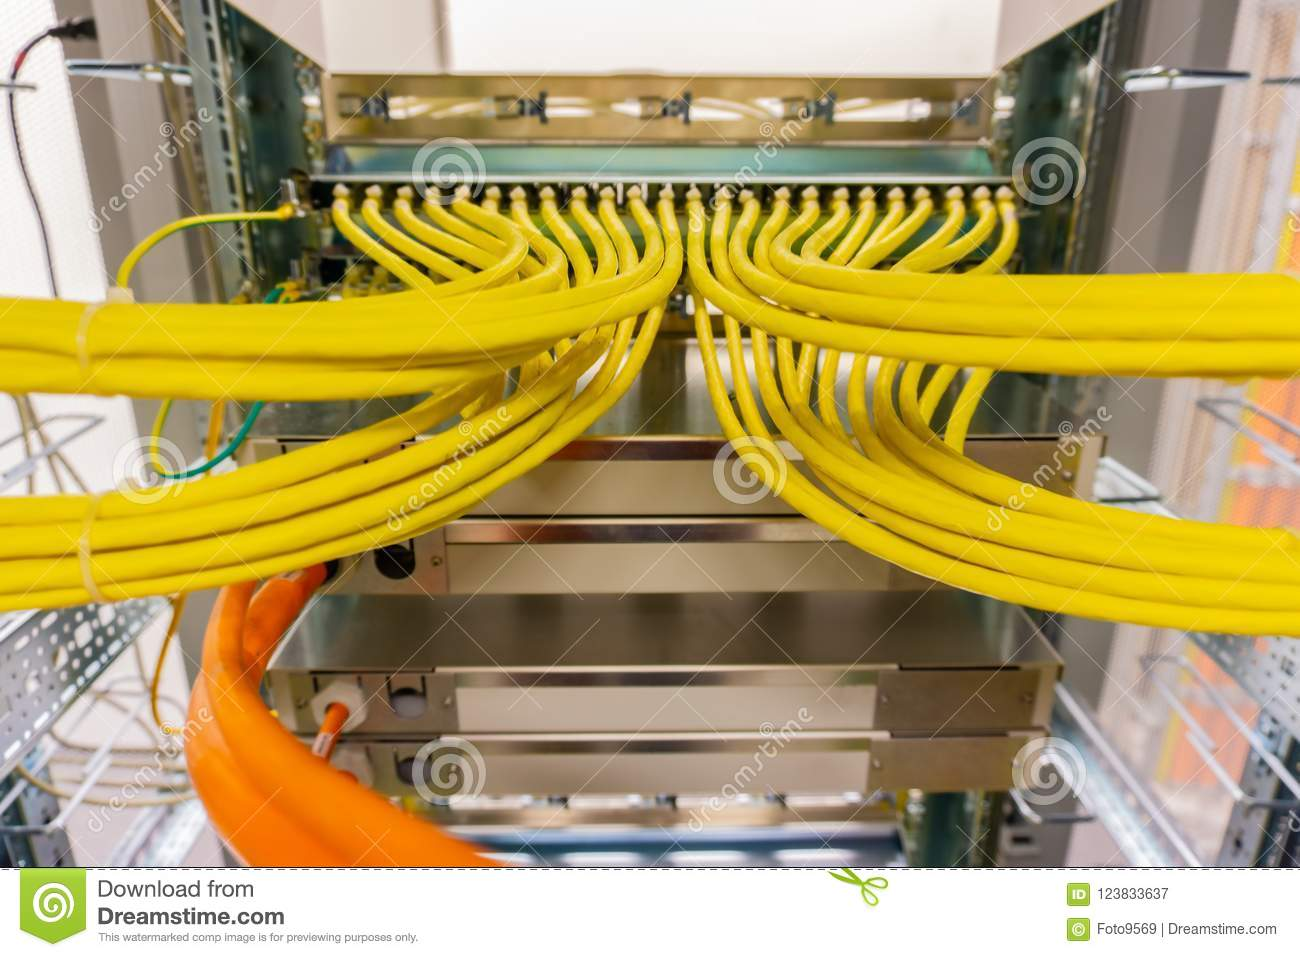 Fiber Optic Network Cable Diagram Trusted Wiring Diagrams Switch Connections For Rj45 And Ethernet